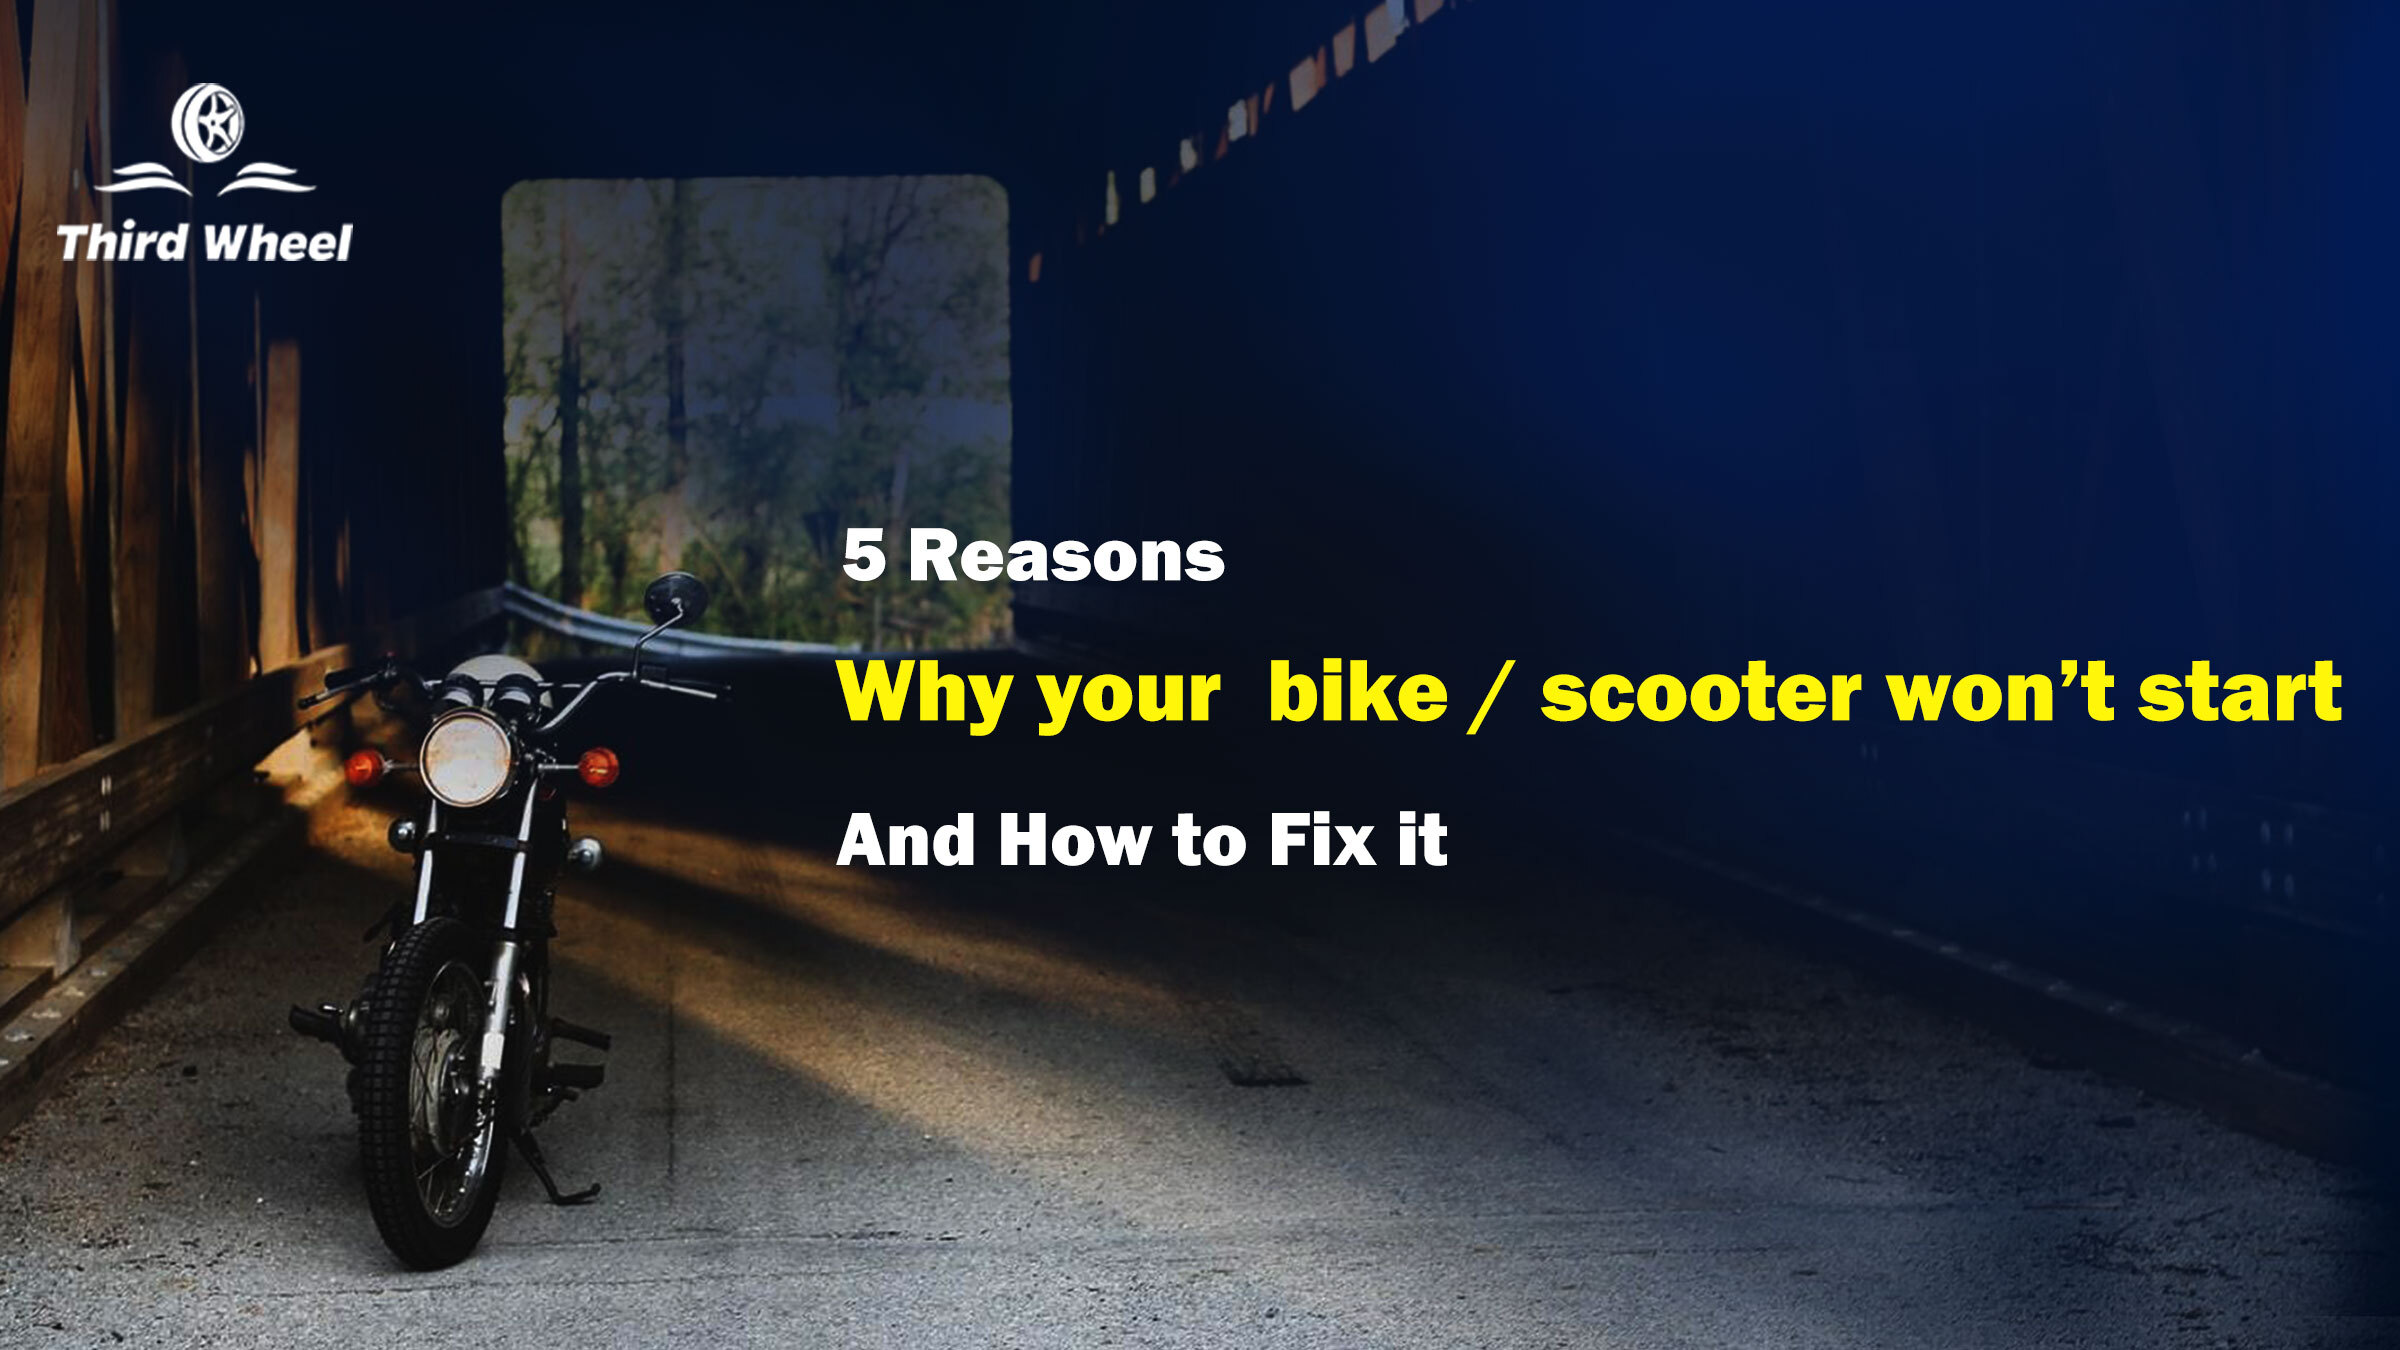 5 Reasons Why your bike / scooter won't start and How to fix it